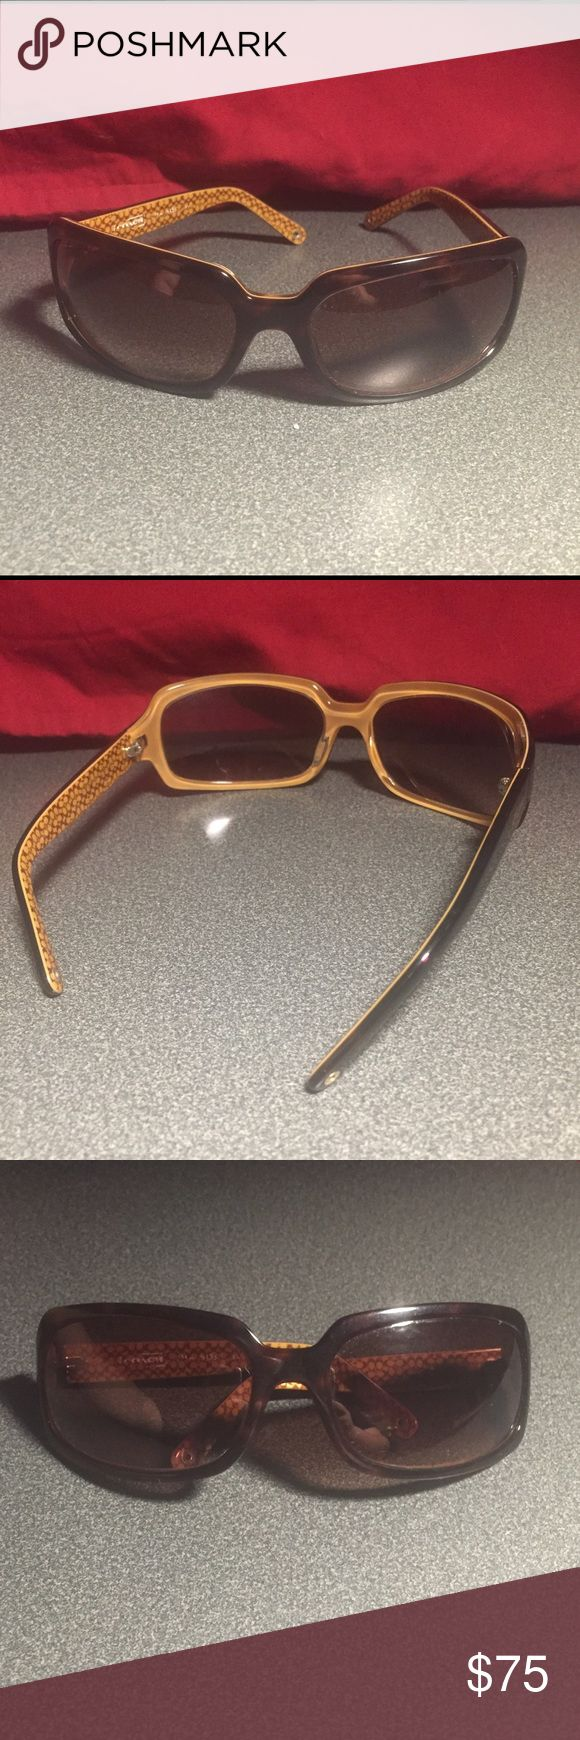 Coach sunglasses Purchases from coach outlet store about 5 years ago. Still in great condition. One side of the hinge/arm is loose but can easily be repaired. Dark brown color with light interior. Serial number has worn off. Width- 6inches, height of lenses and frame- 1 & 2/3 inches. Arm length from hinges to end- 4inches. Coach Accessories Sunglasses